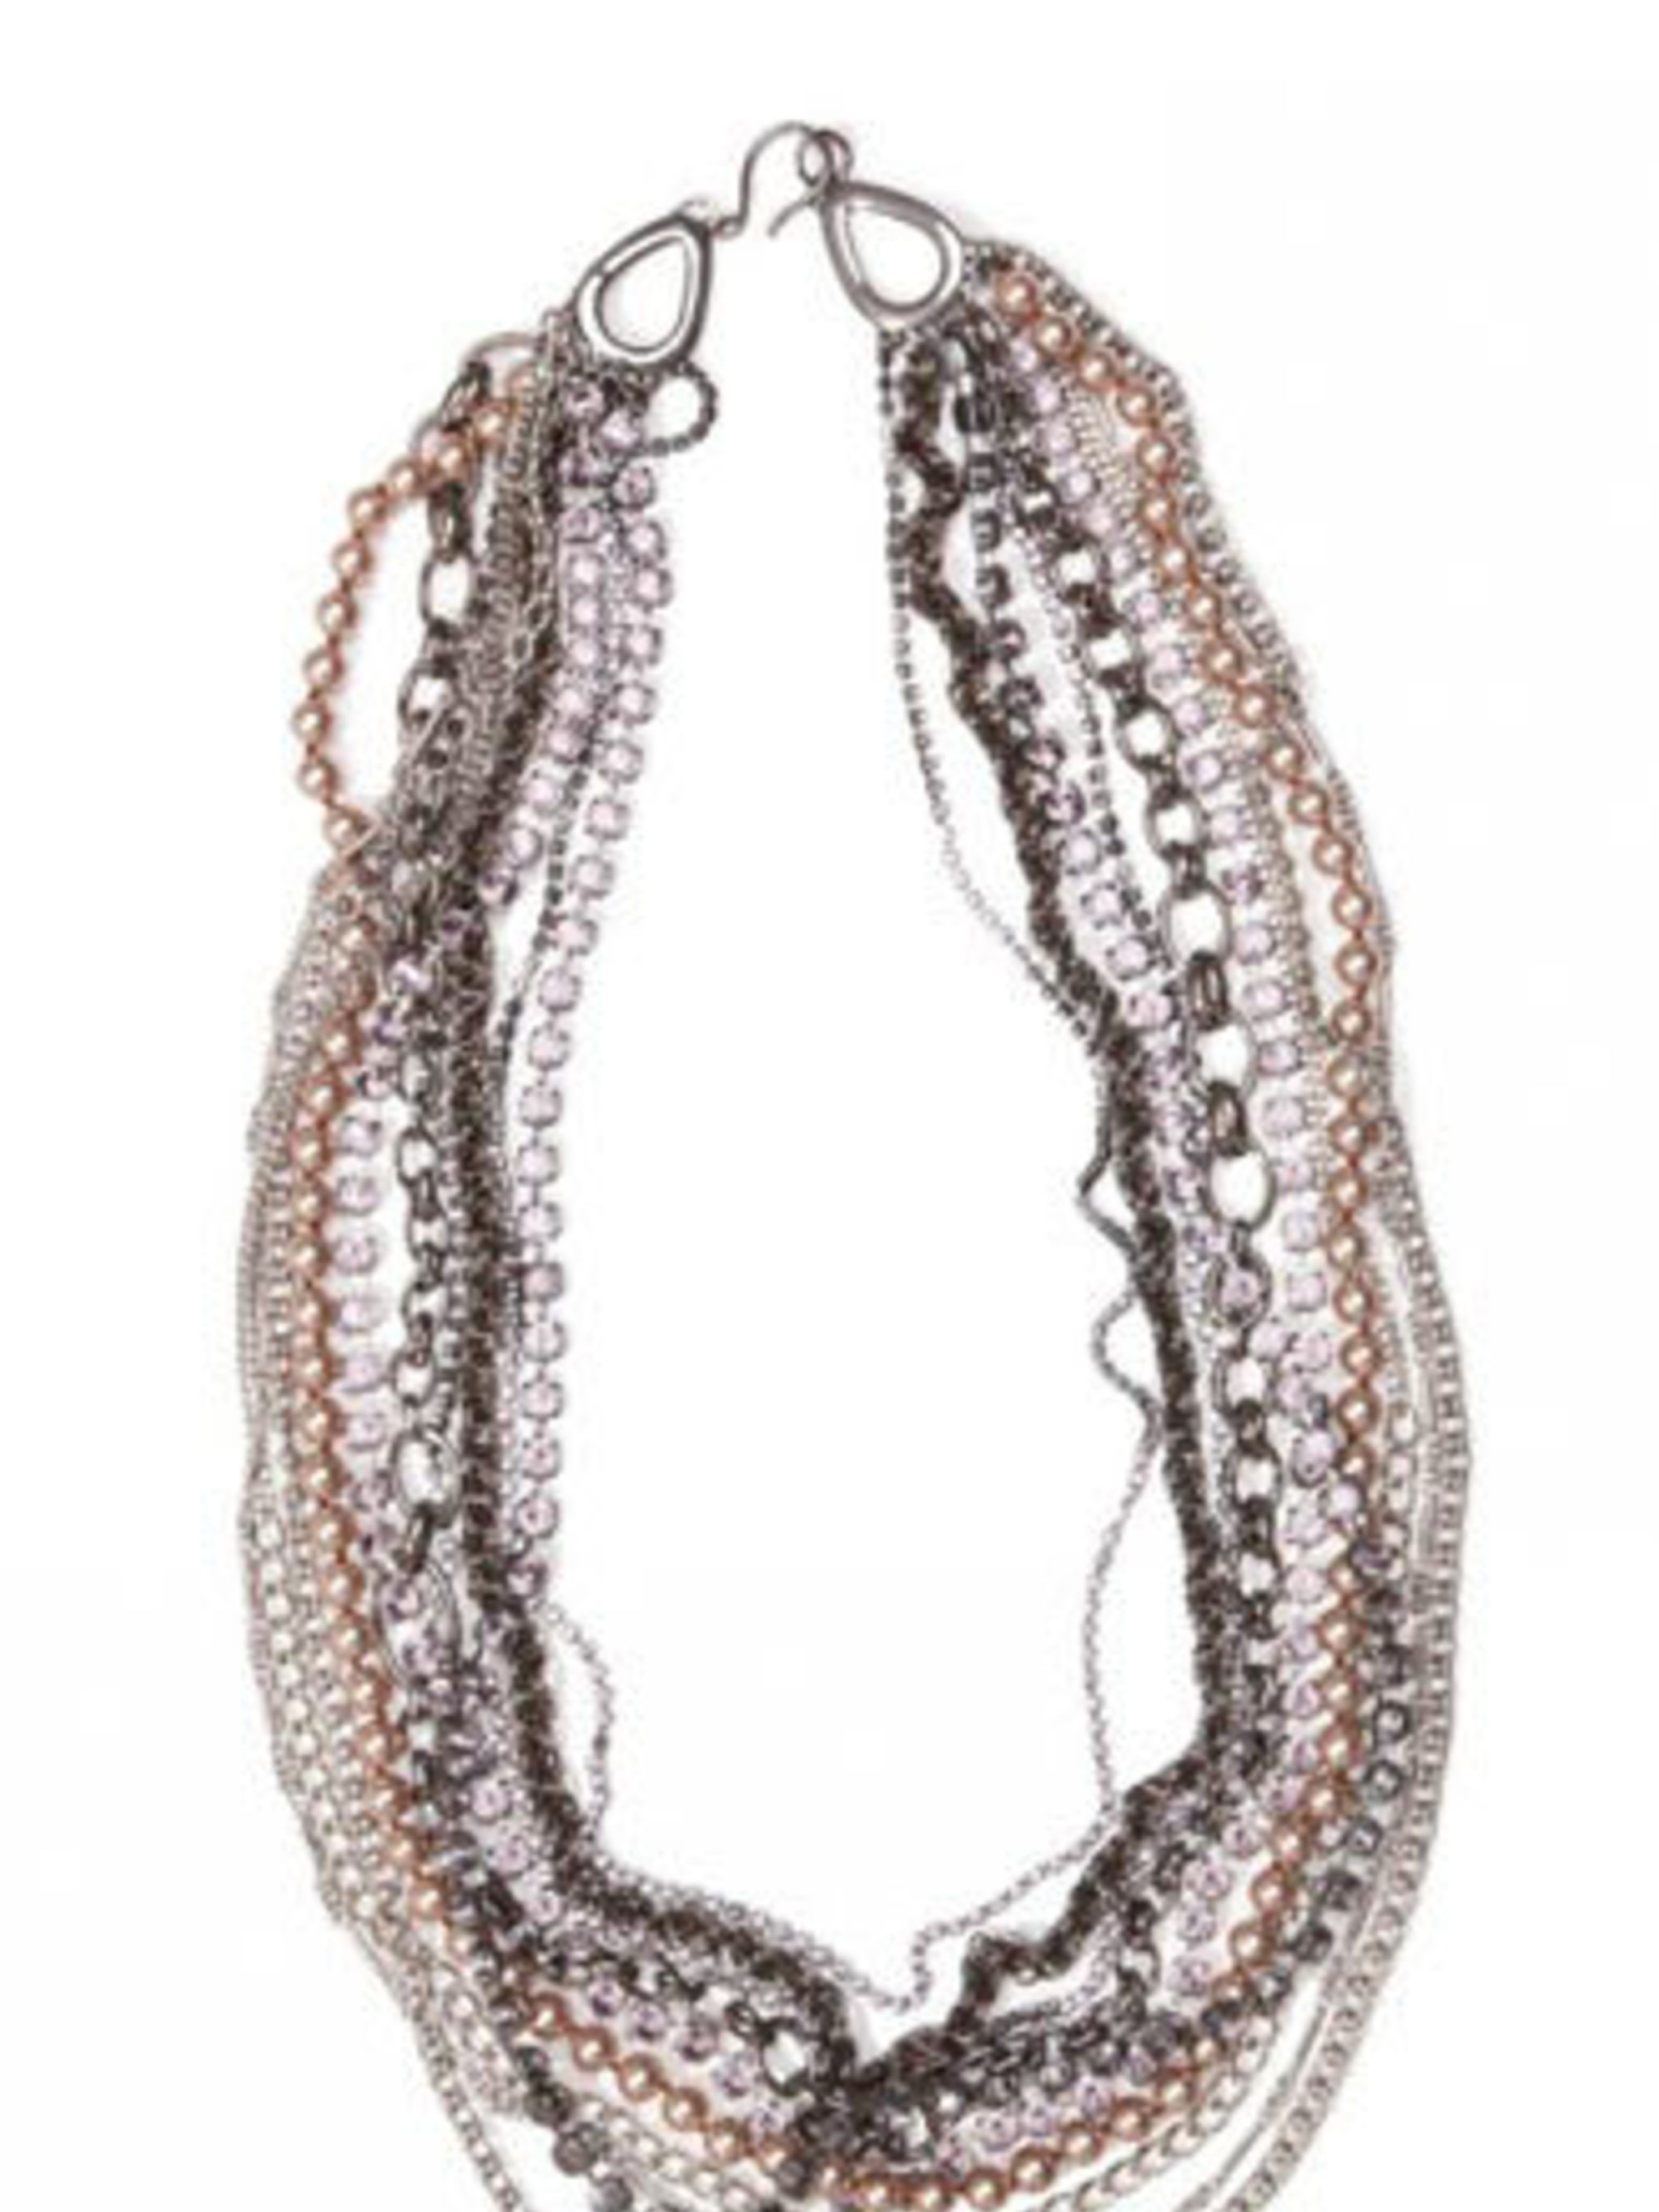 "<p>If you are being virtuous and spending your hard-earned on loved ones, make sure you treat yourself to something. This statement necklace will revive all your party staples. </p><p>Necklace, £95 by <a href=""http://bananarepublic.eu/"">Banana Republic</a"